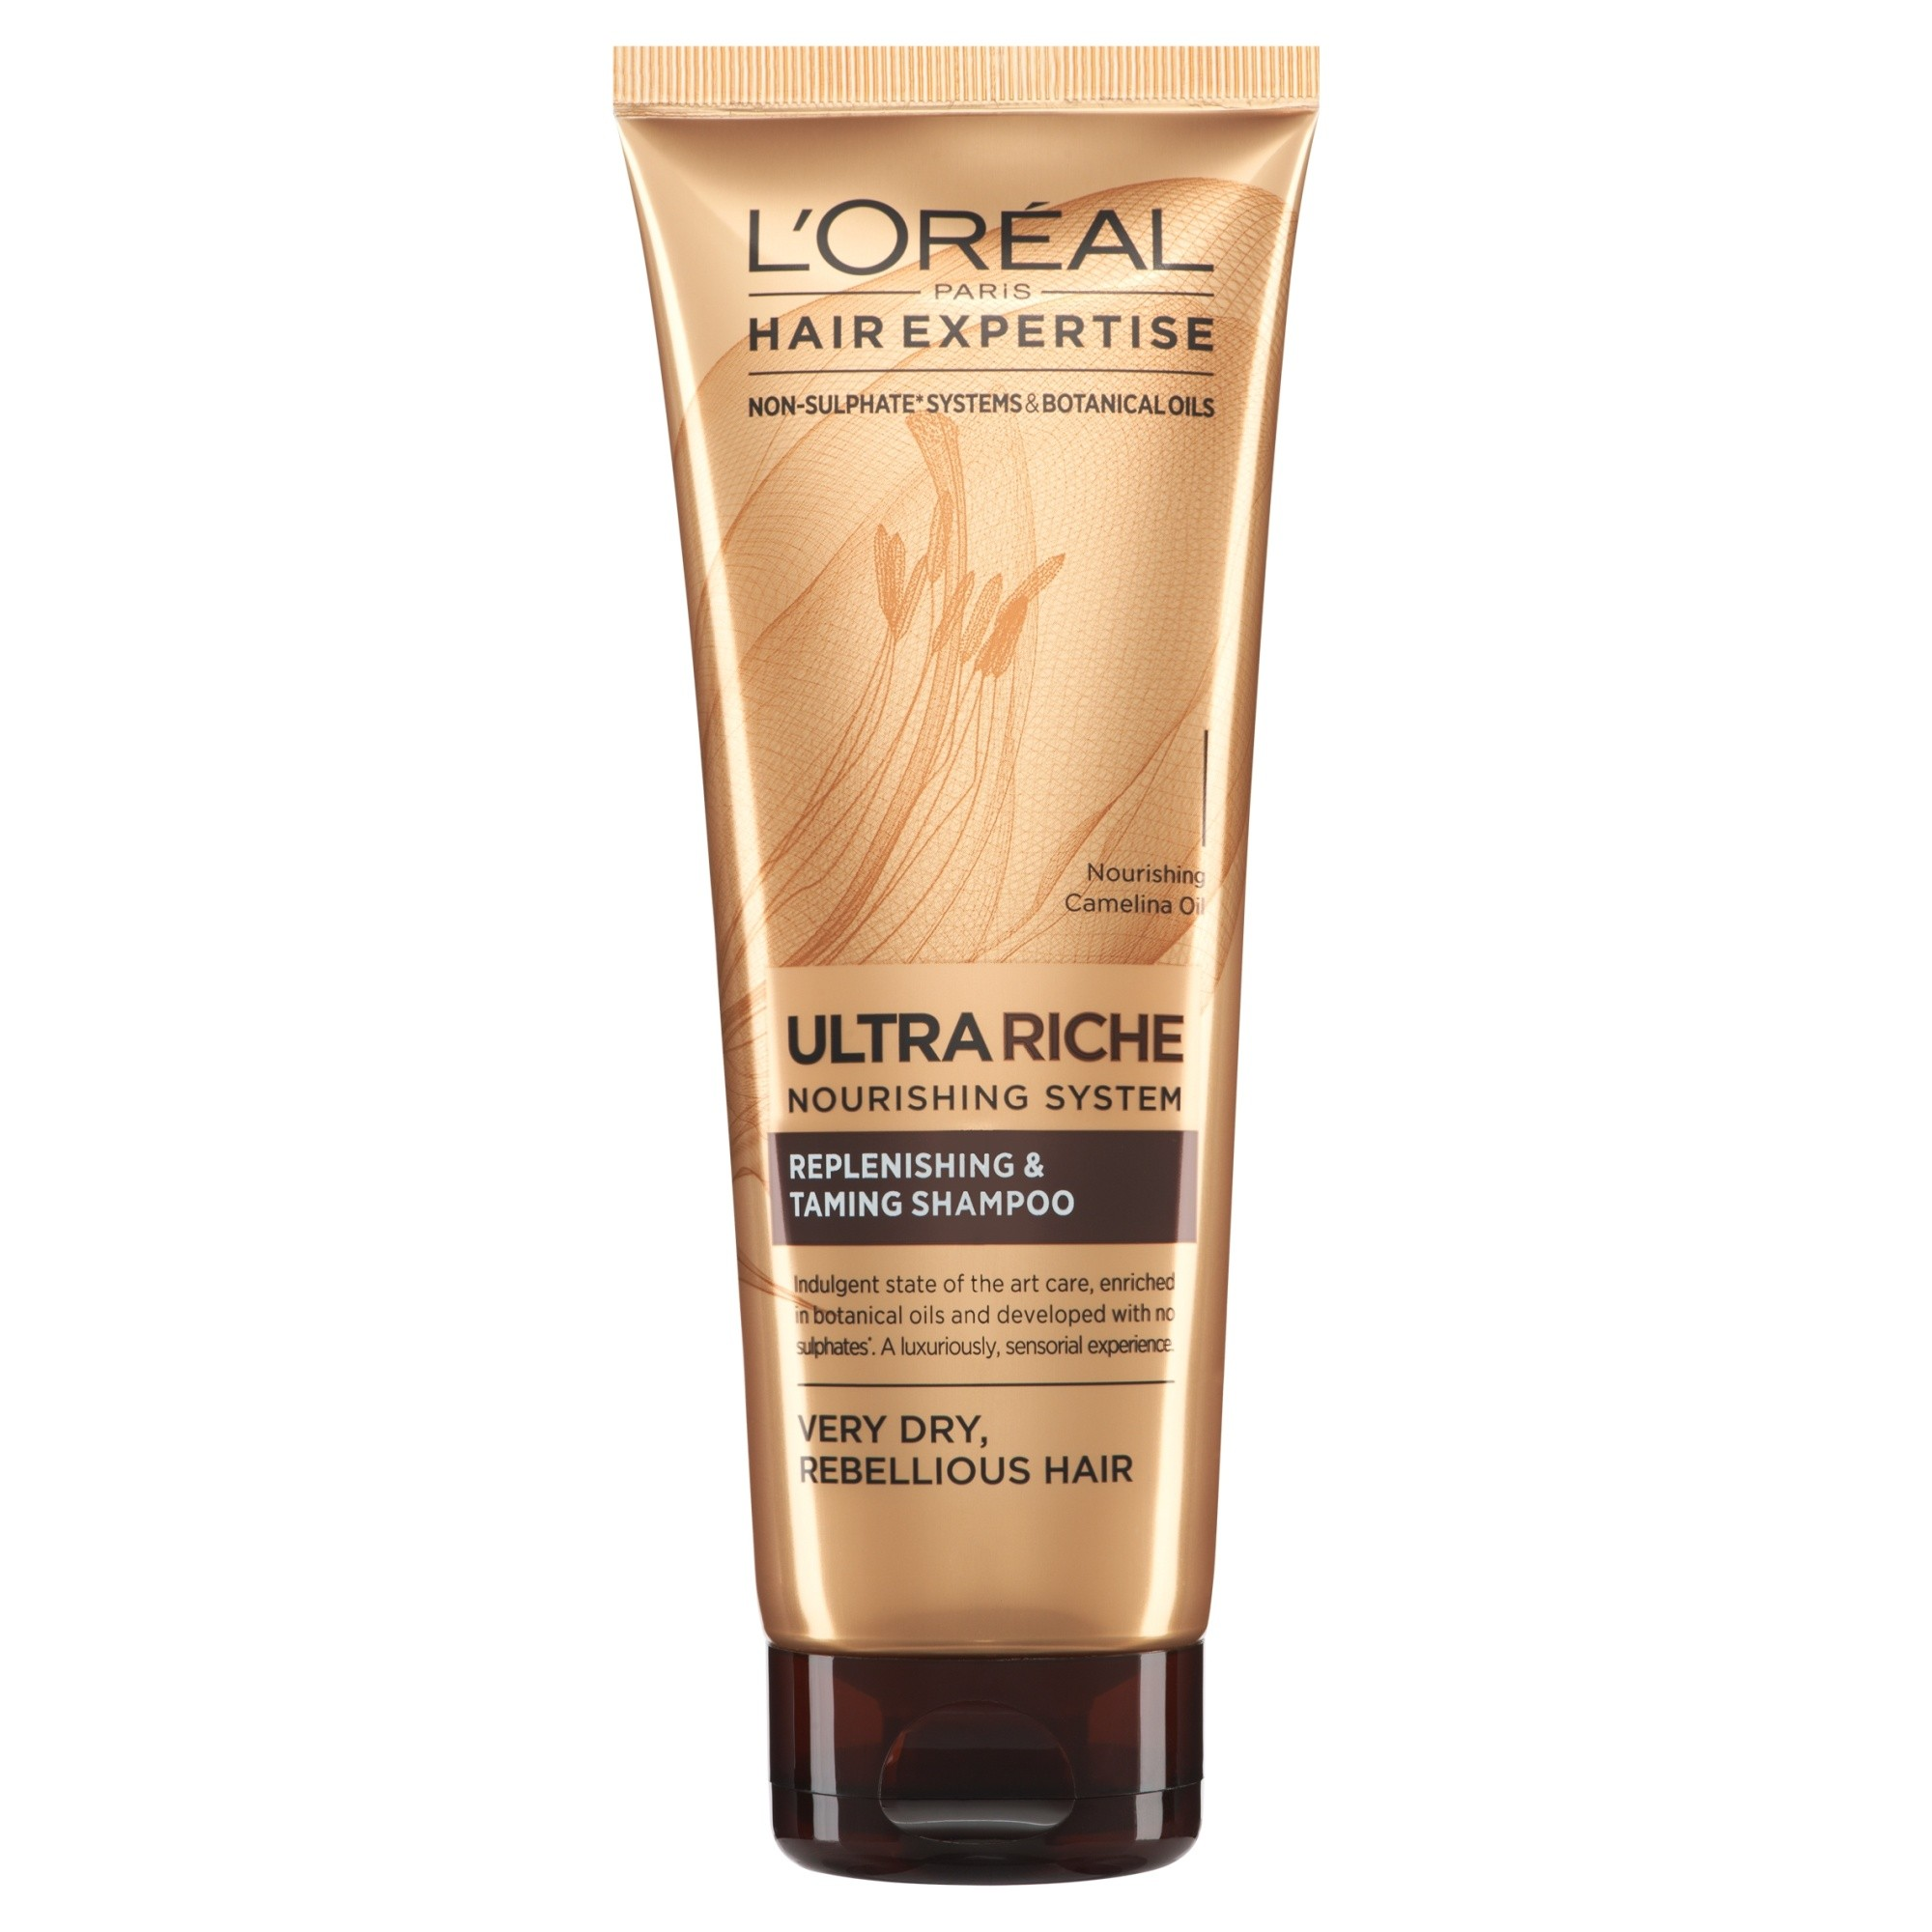 LOreal Paris Hair Expertise UltraRiche Replenishing and Taming Shampoo